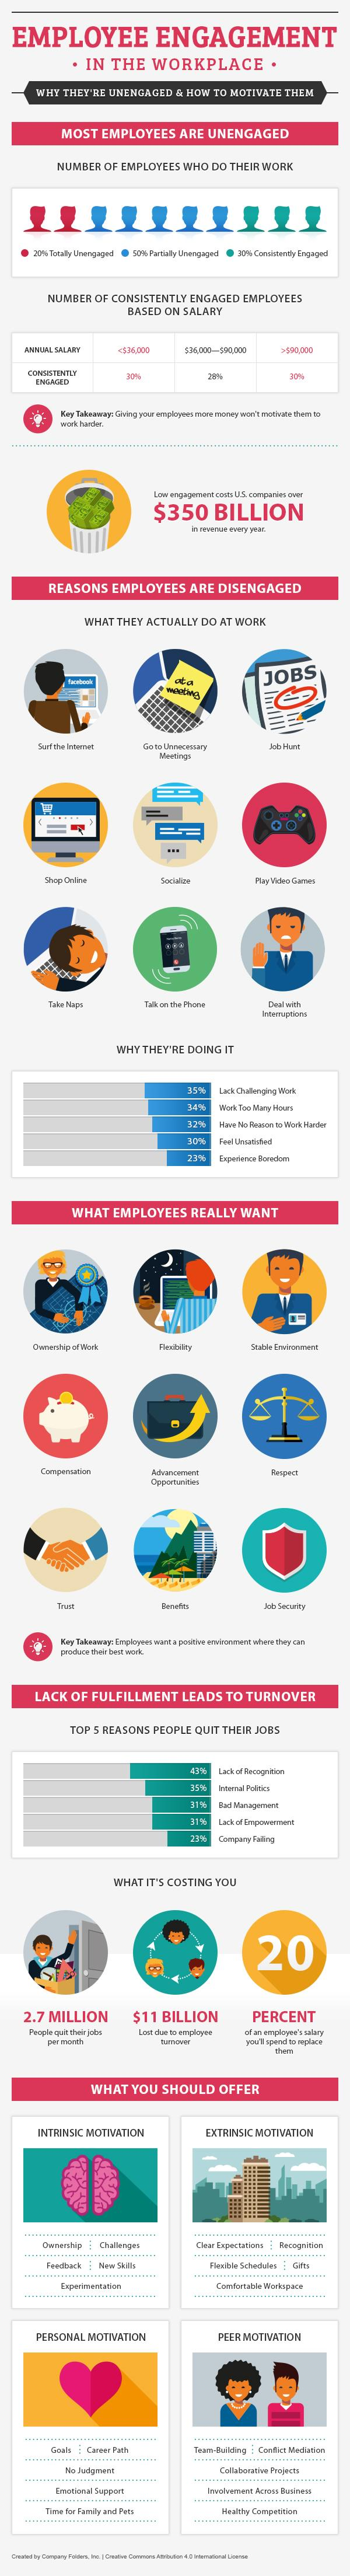 Employee Engagement in the Workplace